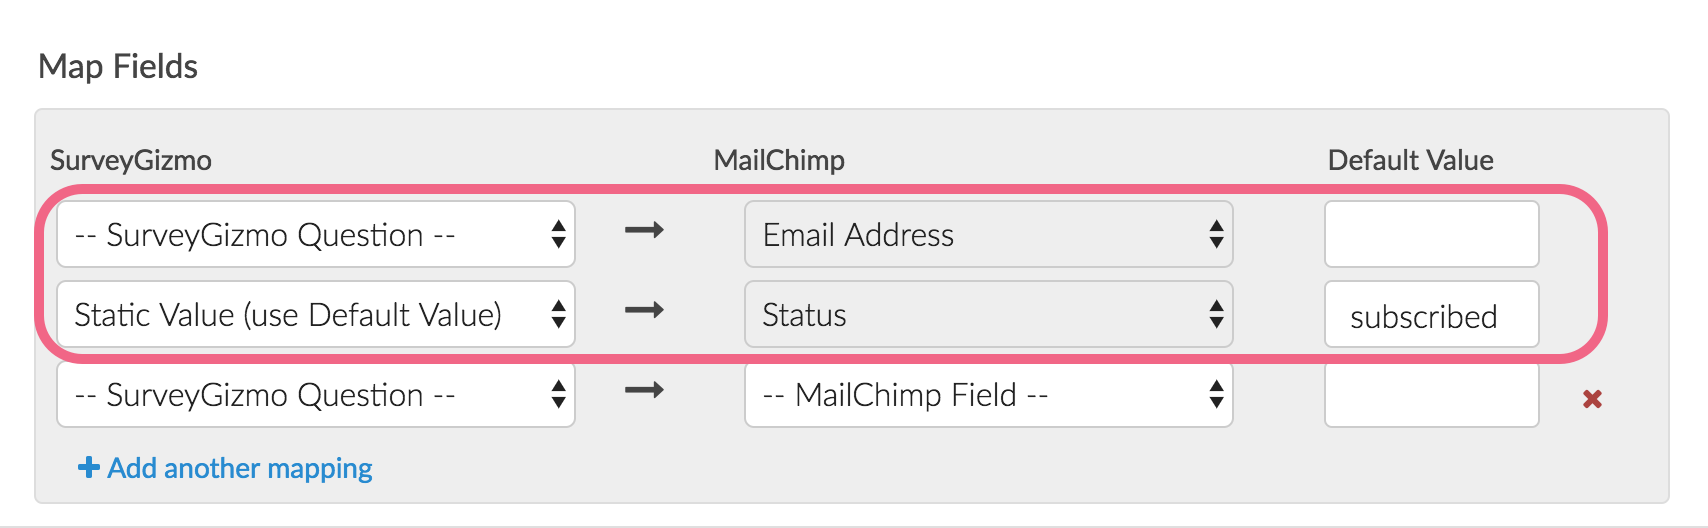 Email Address and Status